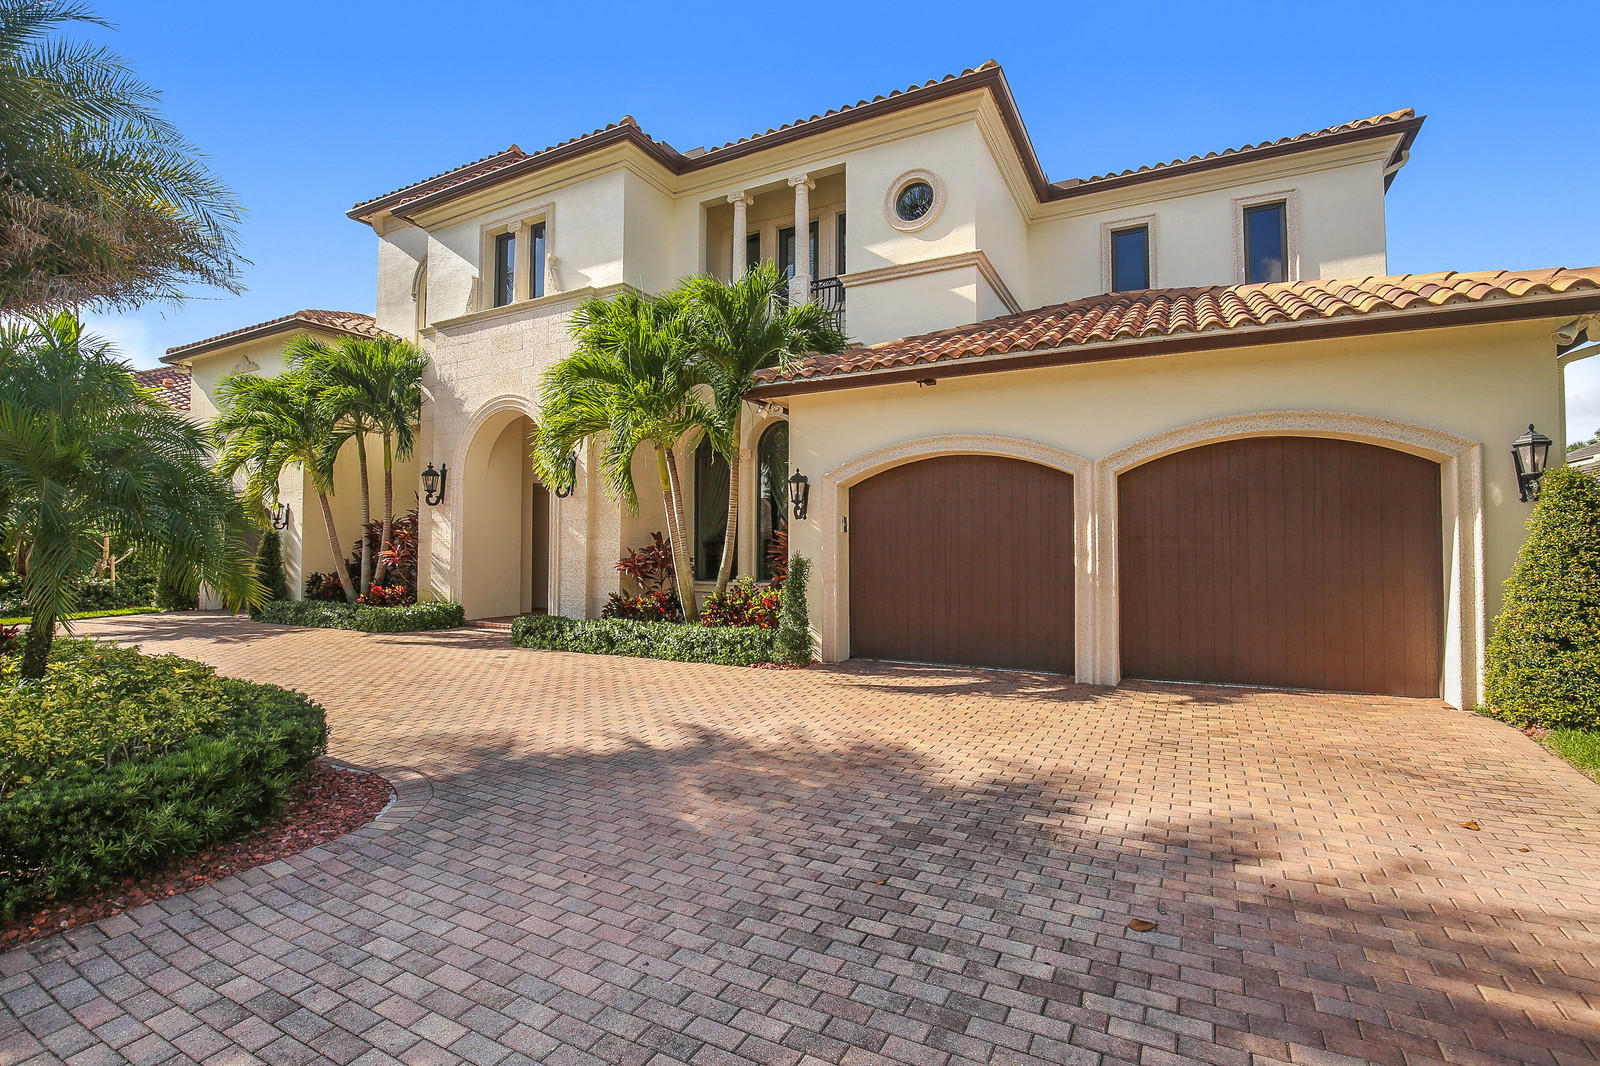 3949 52nd Street, Boca Raton, Florida 33496, 9 Bedrooms Bedrooms, ,8.3 BathroomsBathrooms,Single Family,For Sale,Woodfield Country Club,52nd,RX-10462701